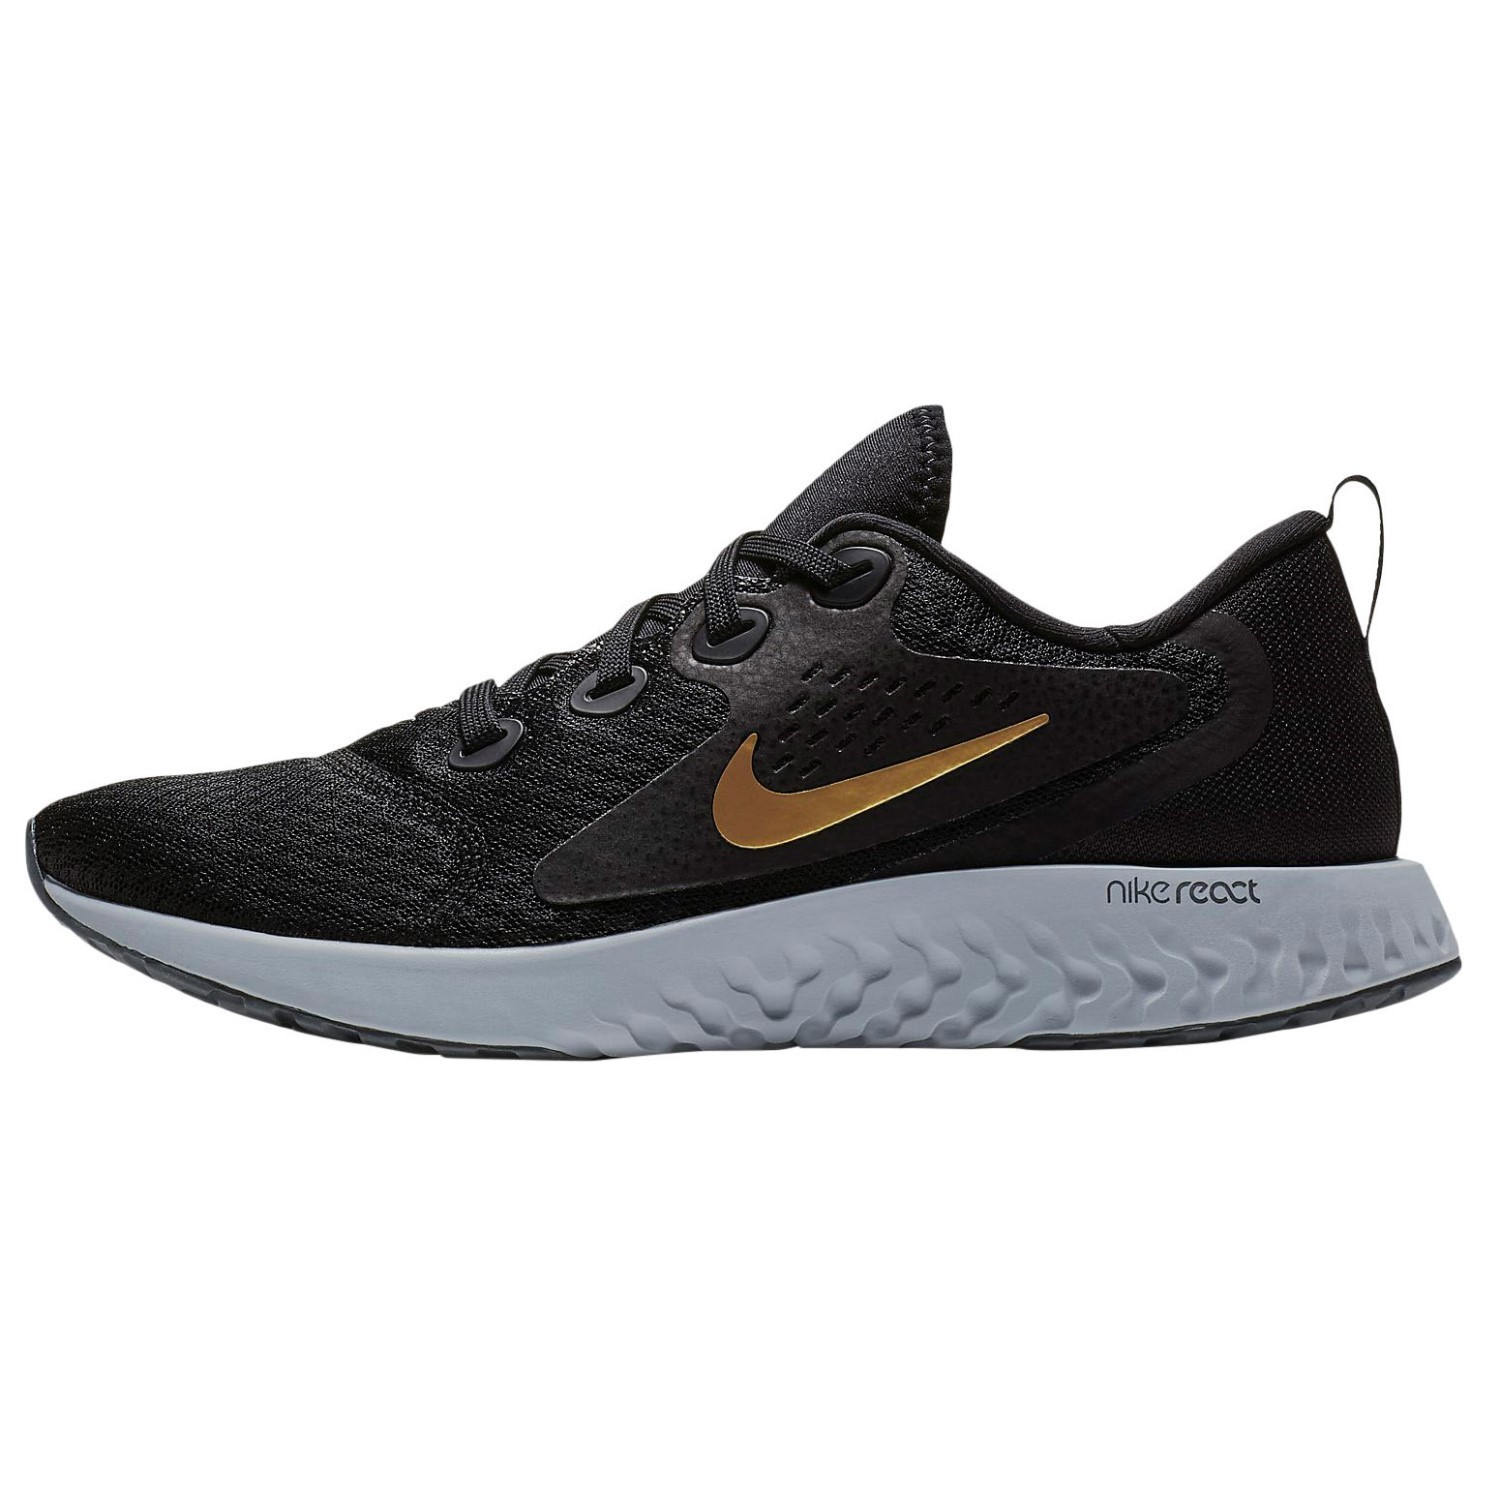 Nike Legend React - Womens Running Shoes - Black/Metallic